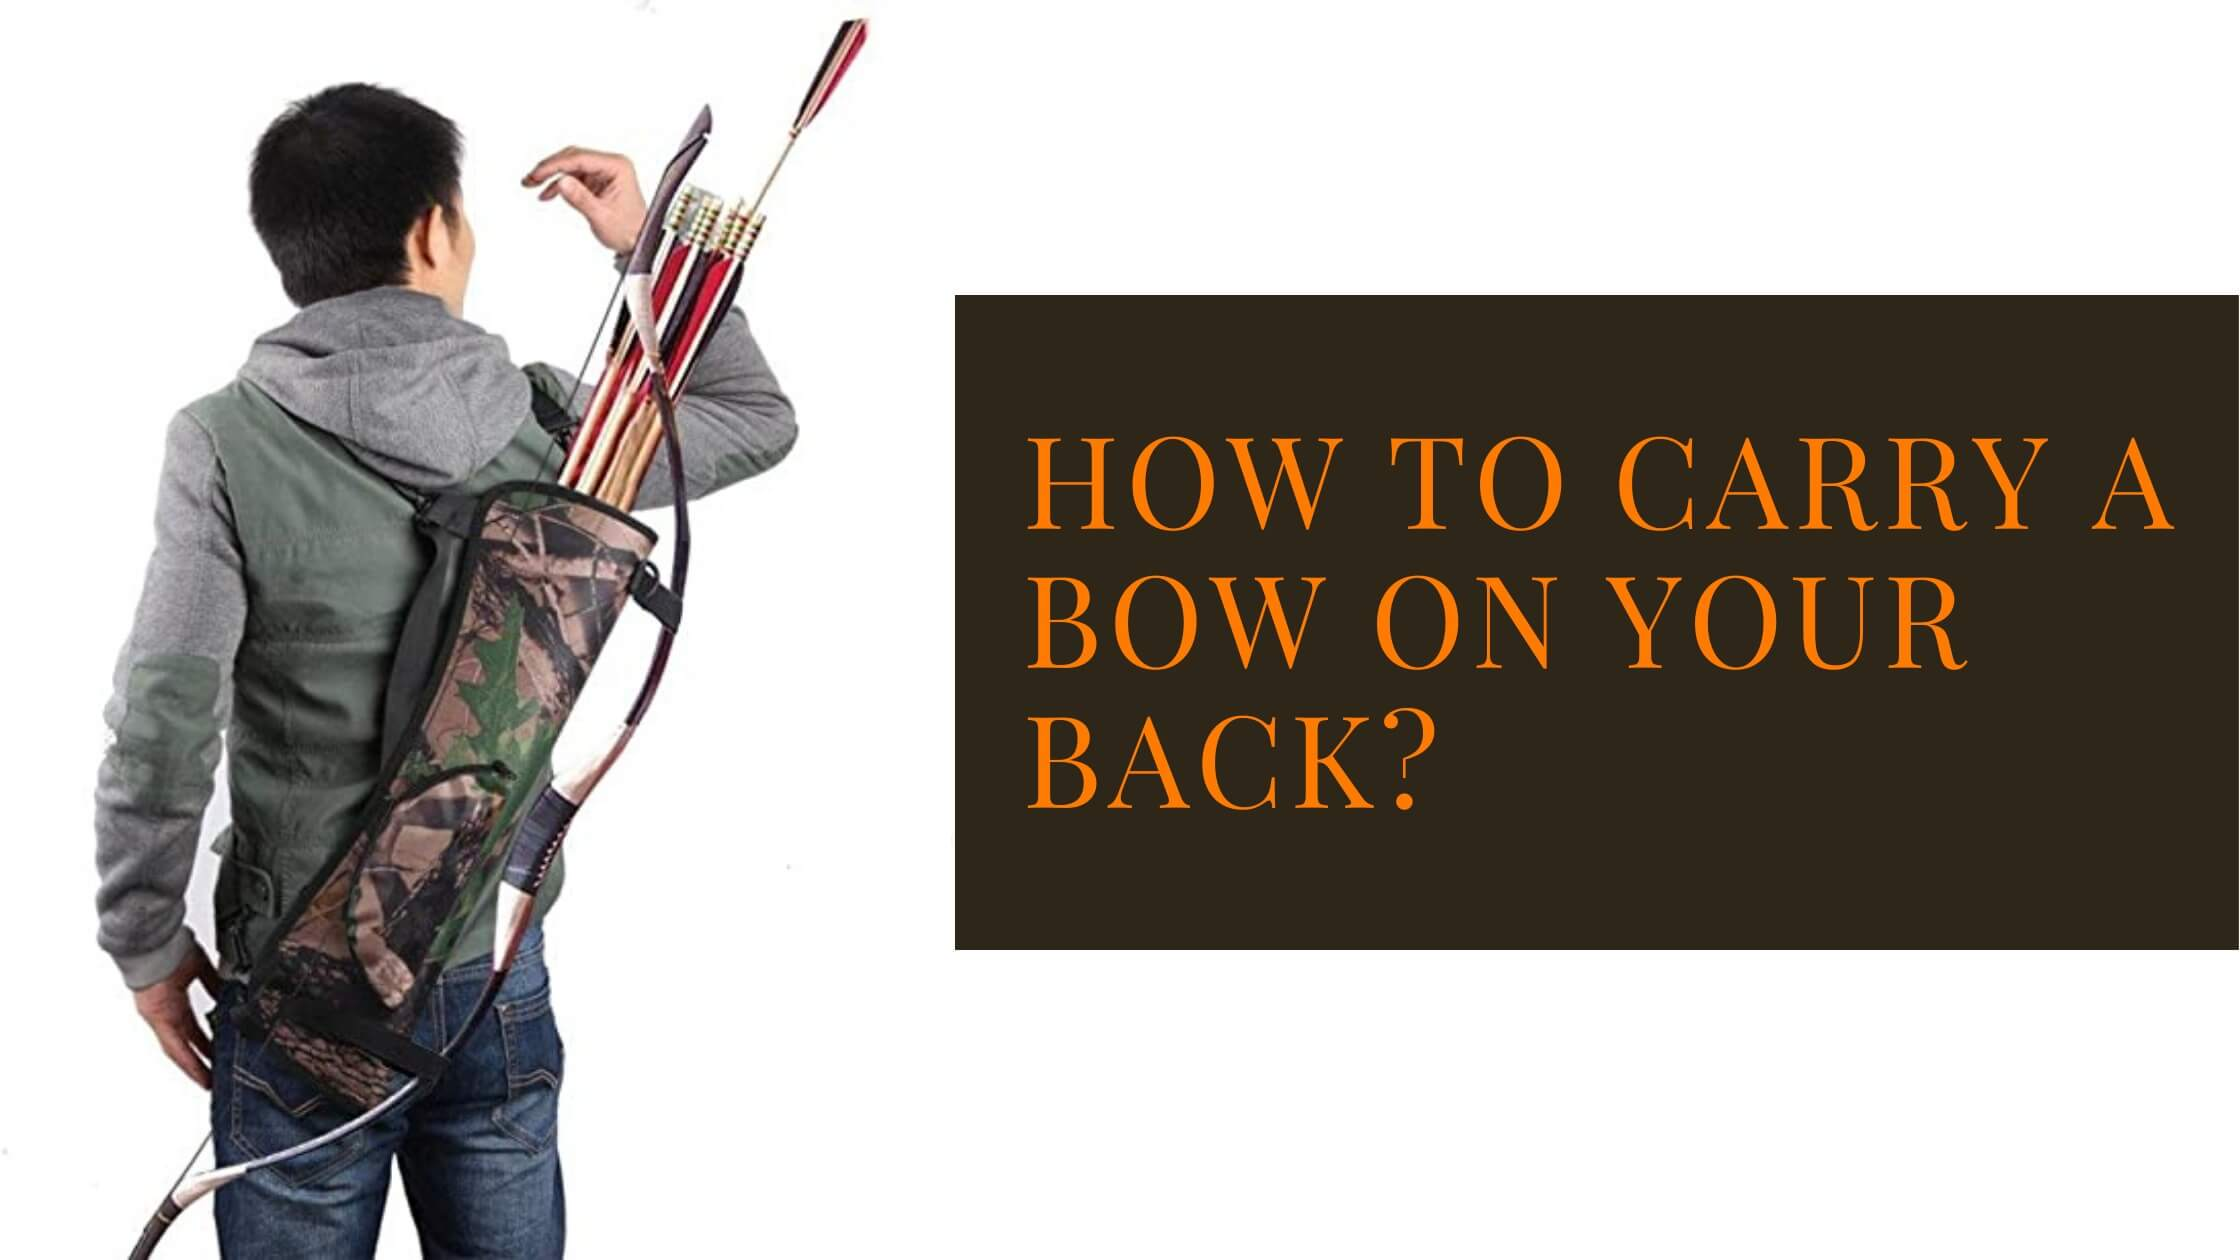 How to Carry a Bow on your Back?